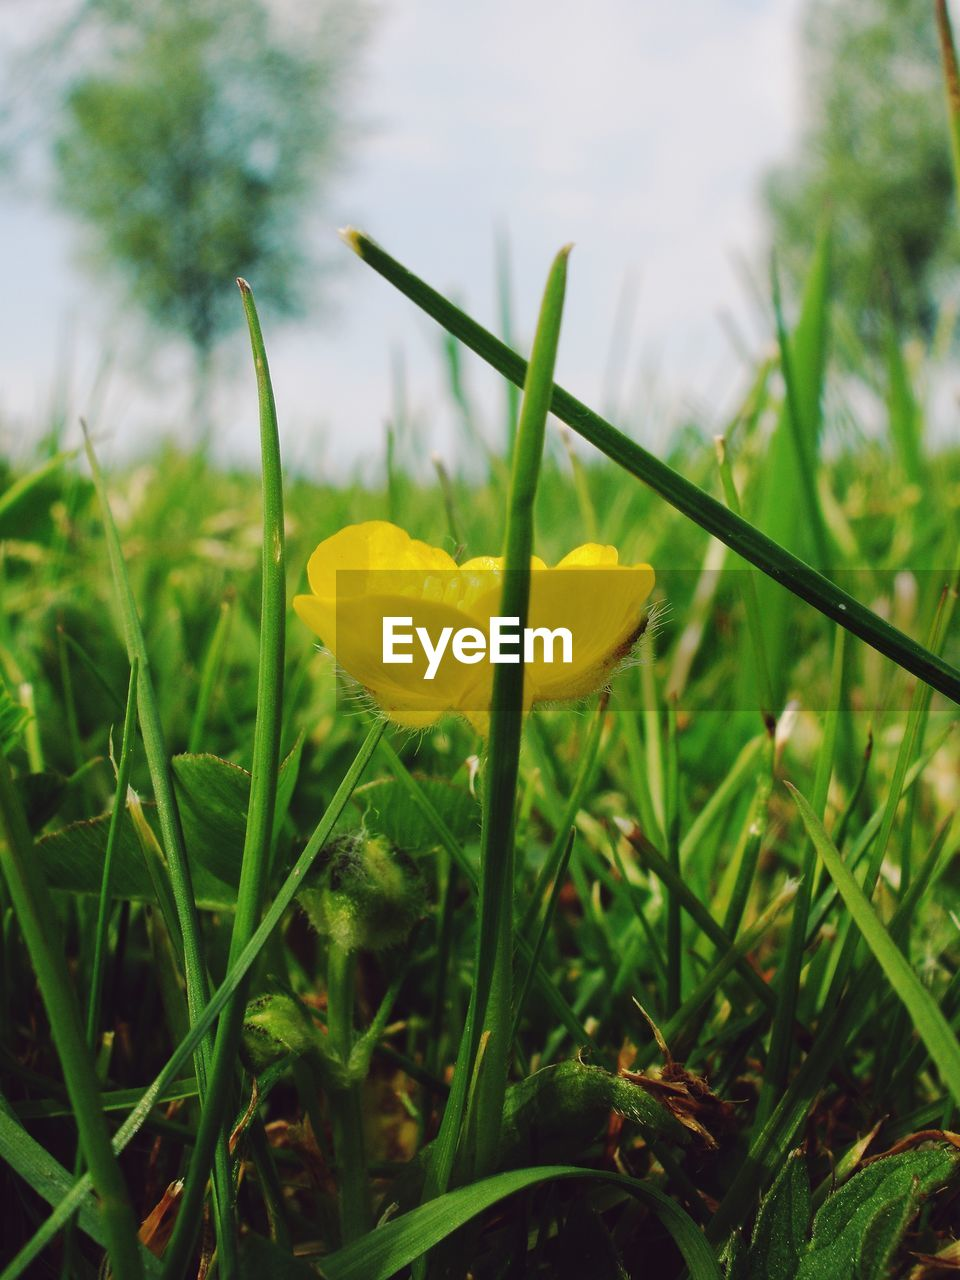 plant, flowering plant, growth, freshness, beauty in nature, flower, fragility, vulnerability, yellow, green color, close-up, petal, field, nature, land, day, grass, inflorescence, flower head, selective focus, no people, outdoors, blade of grass, crocus